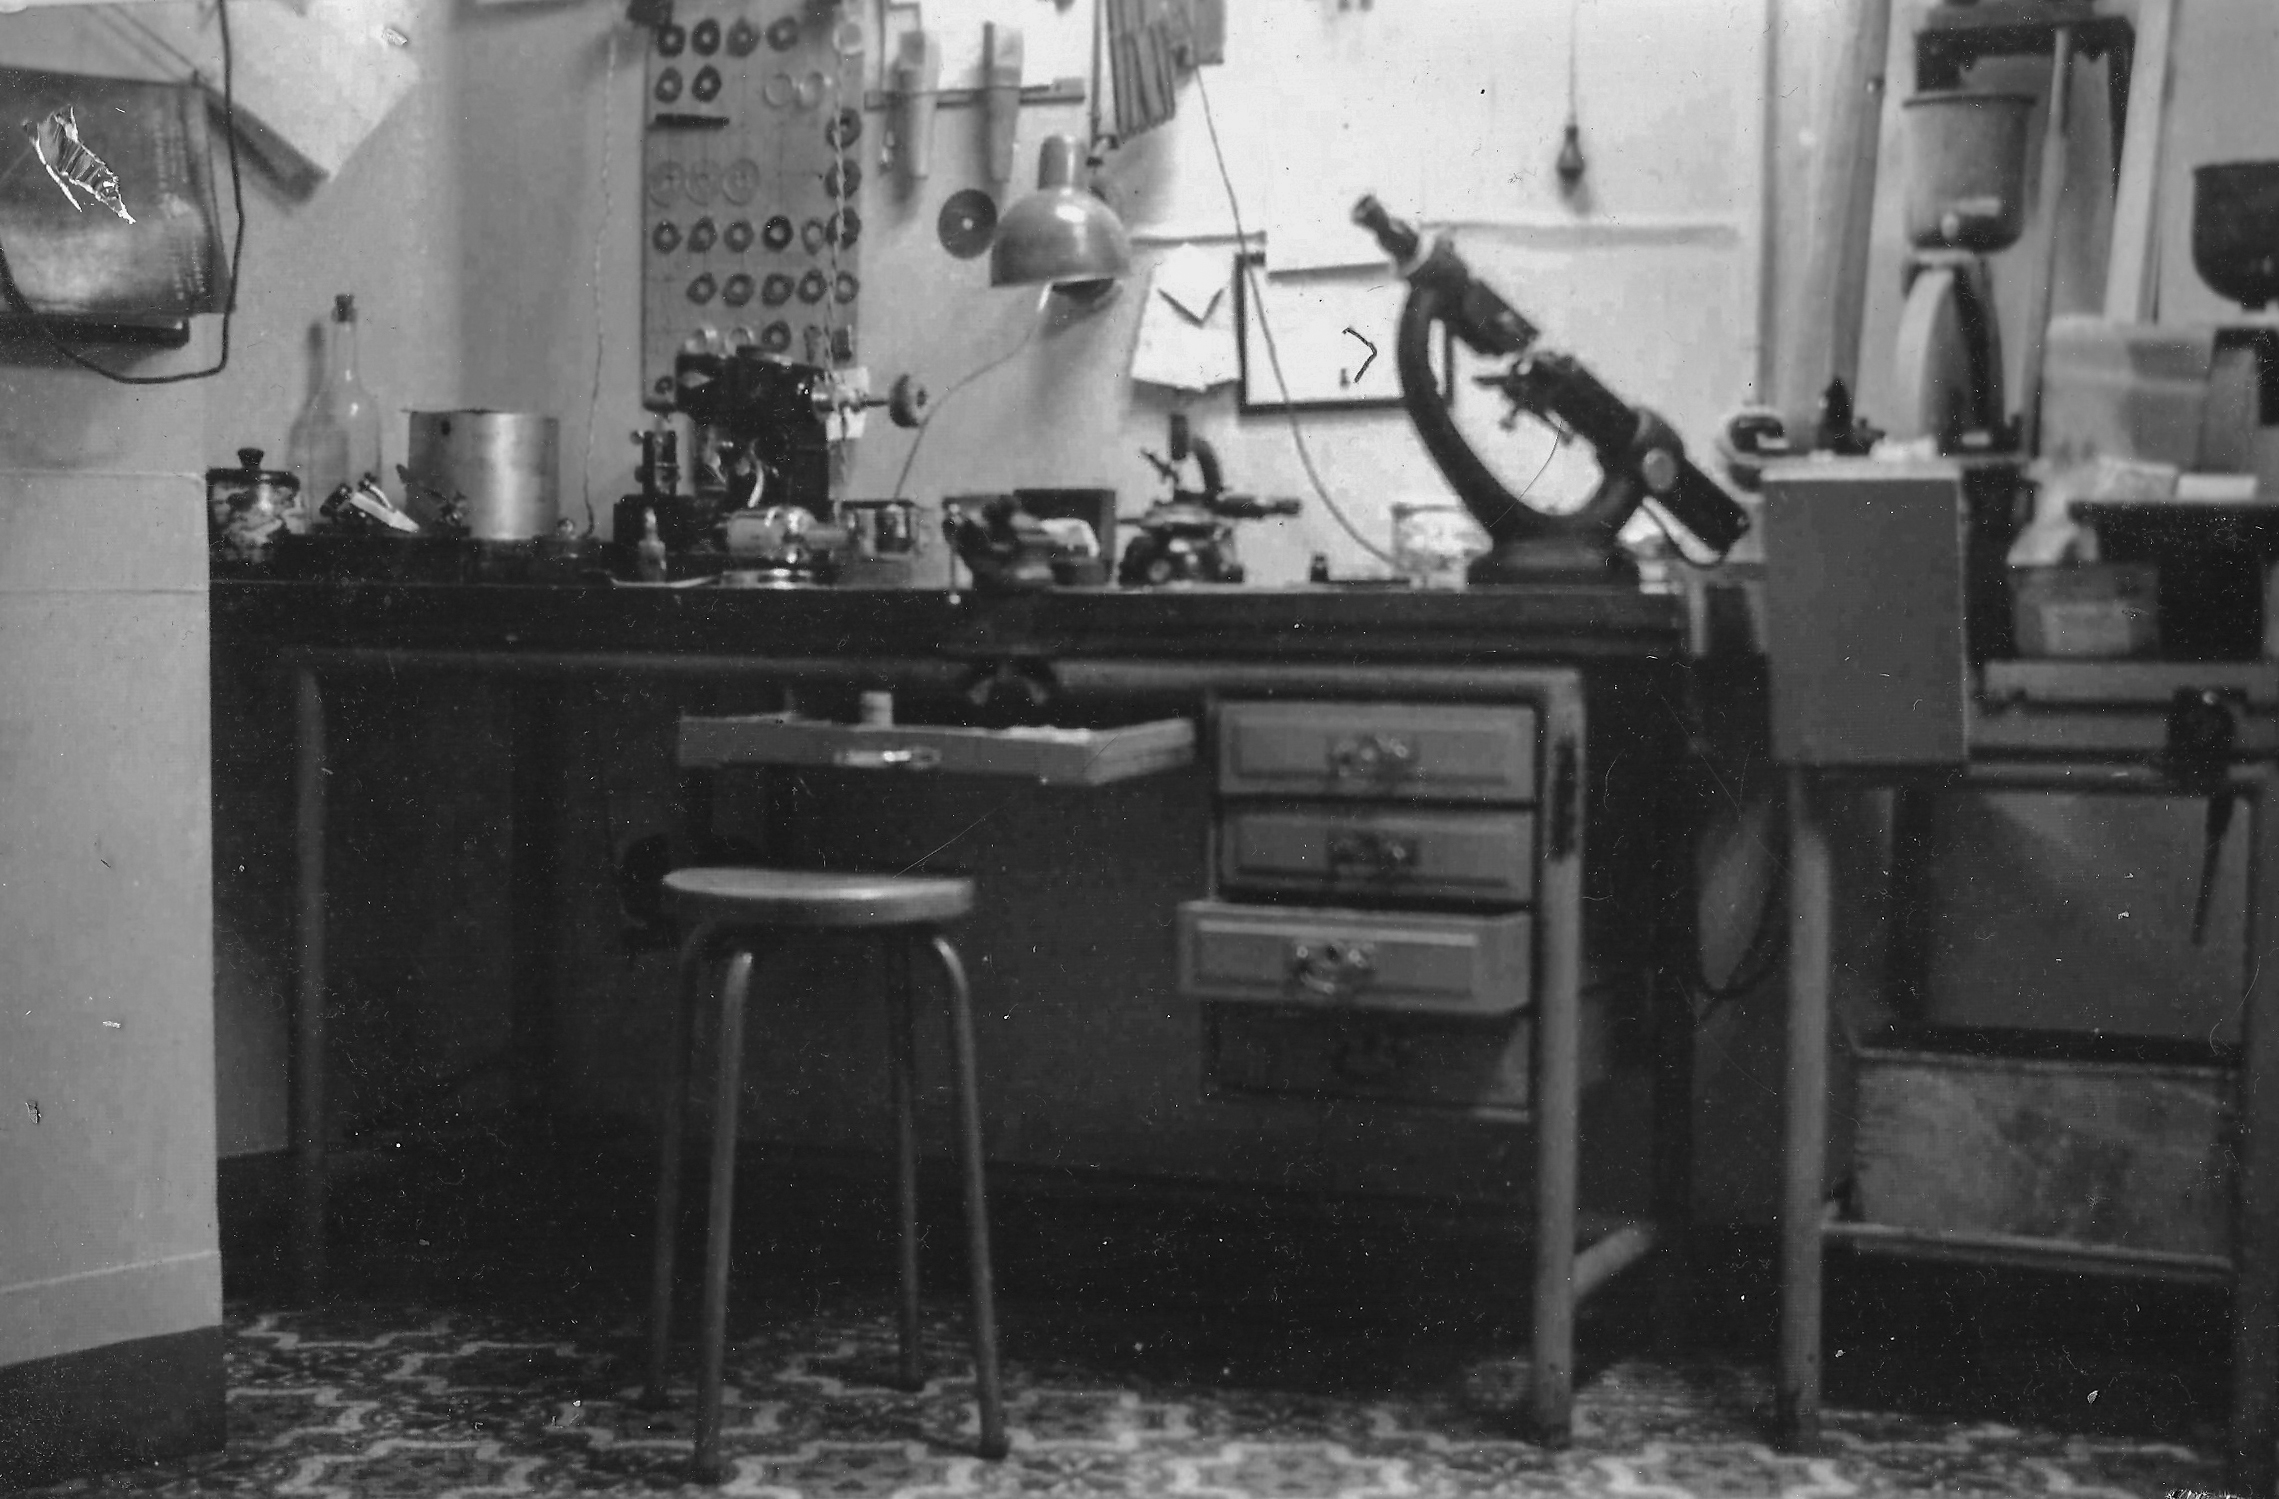 Norbert's workshop, 15 Grand-Rue (Arlon) in the early 1940s. Some of the files and pliers seen on the worktop are still in use today.